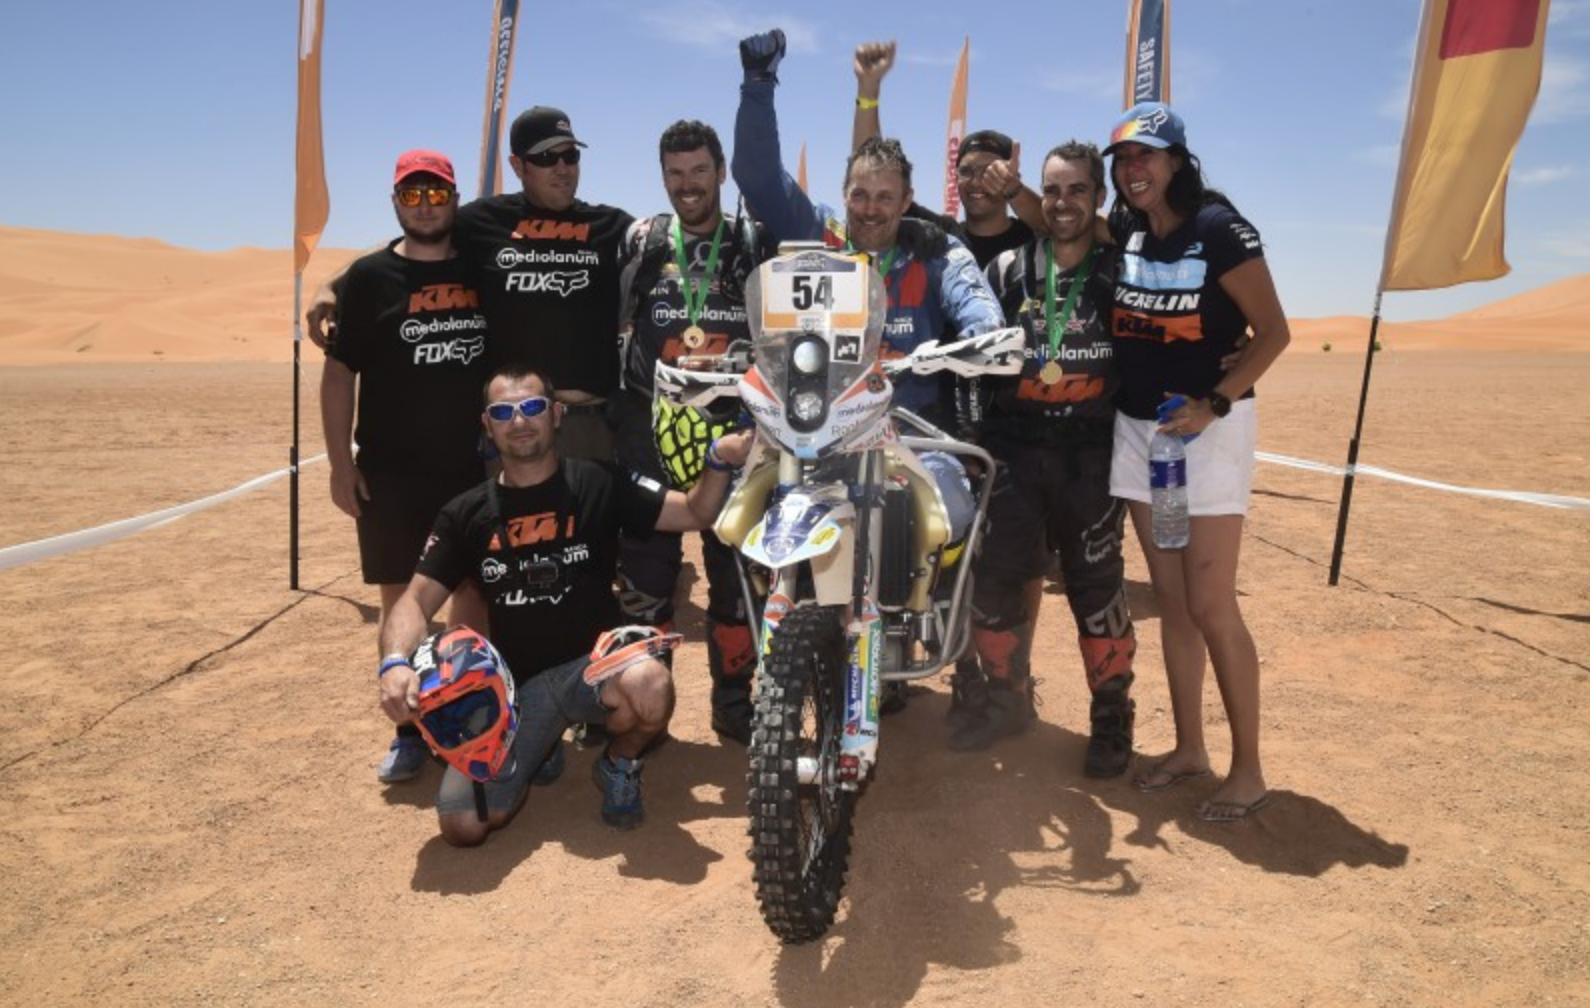 Nicola Dutto and his team after a race, with him sitting on his motorcycle accommodated to allow him to race as a paraplegic.